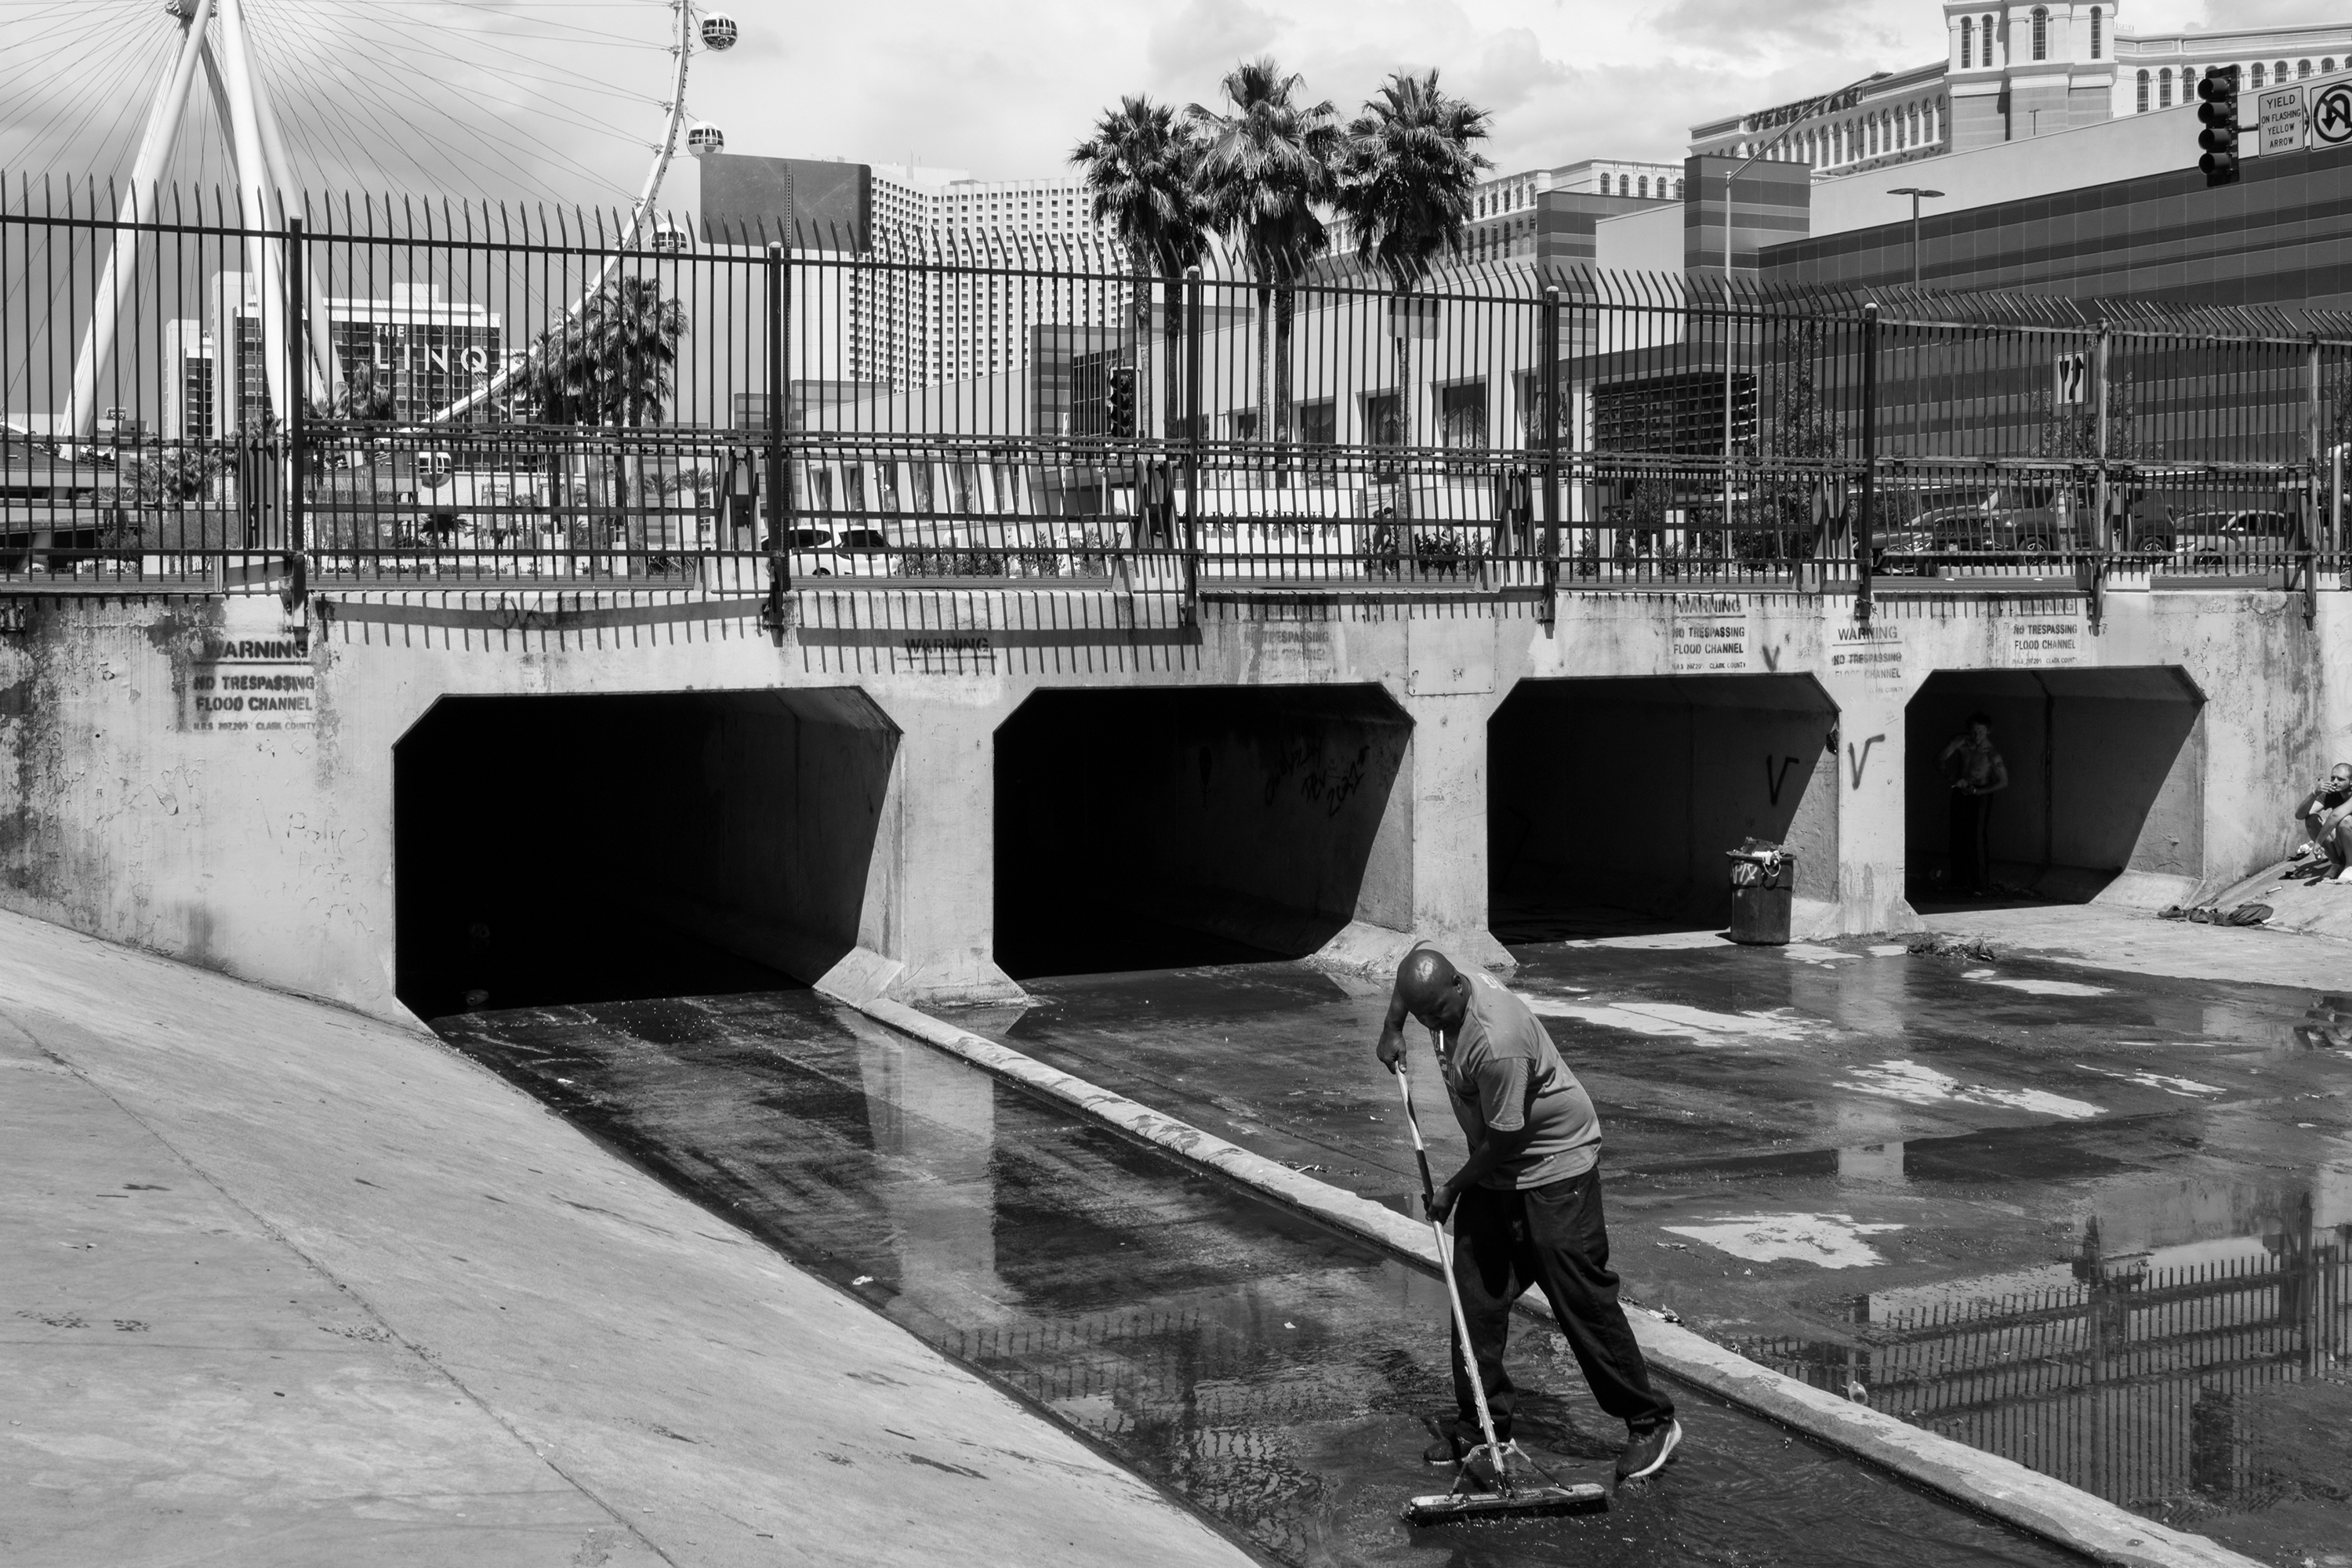 A man sweeps water from a tunnel near Caesars Palace in Las Vegas.